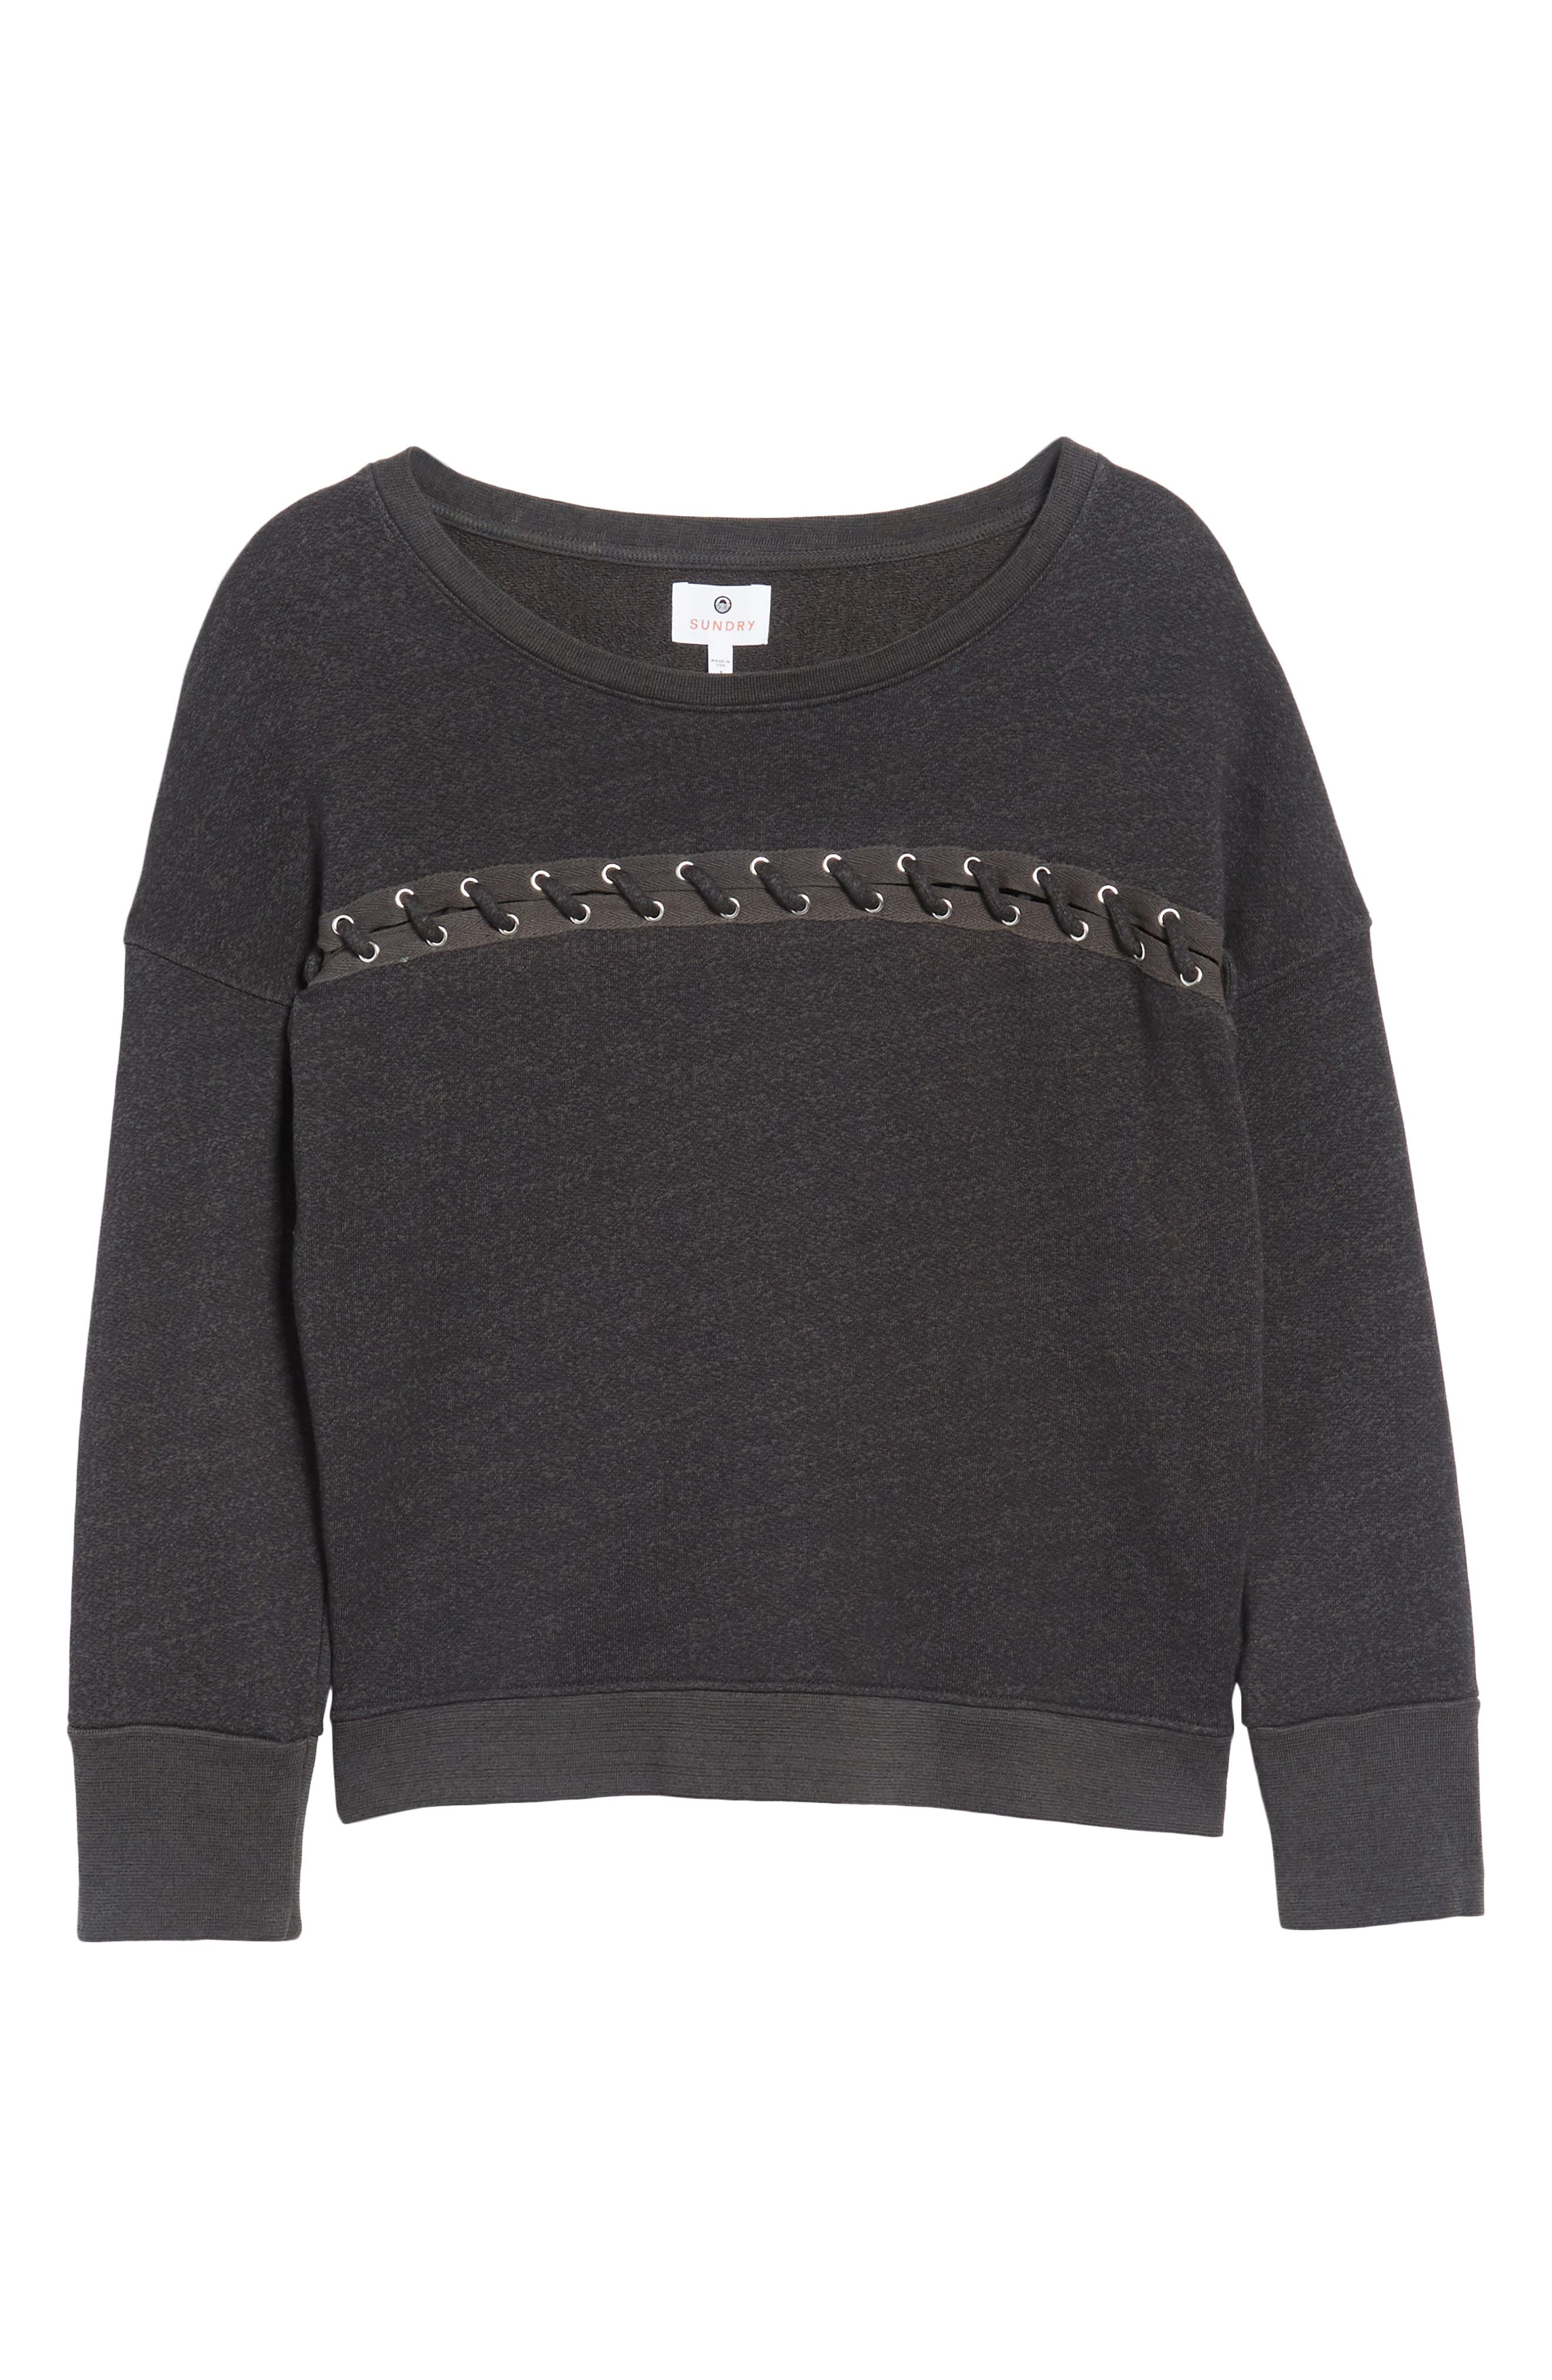 Karma Lace-Up Pullover,                             Alternate thumbnail 6, color,                             Old Black